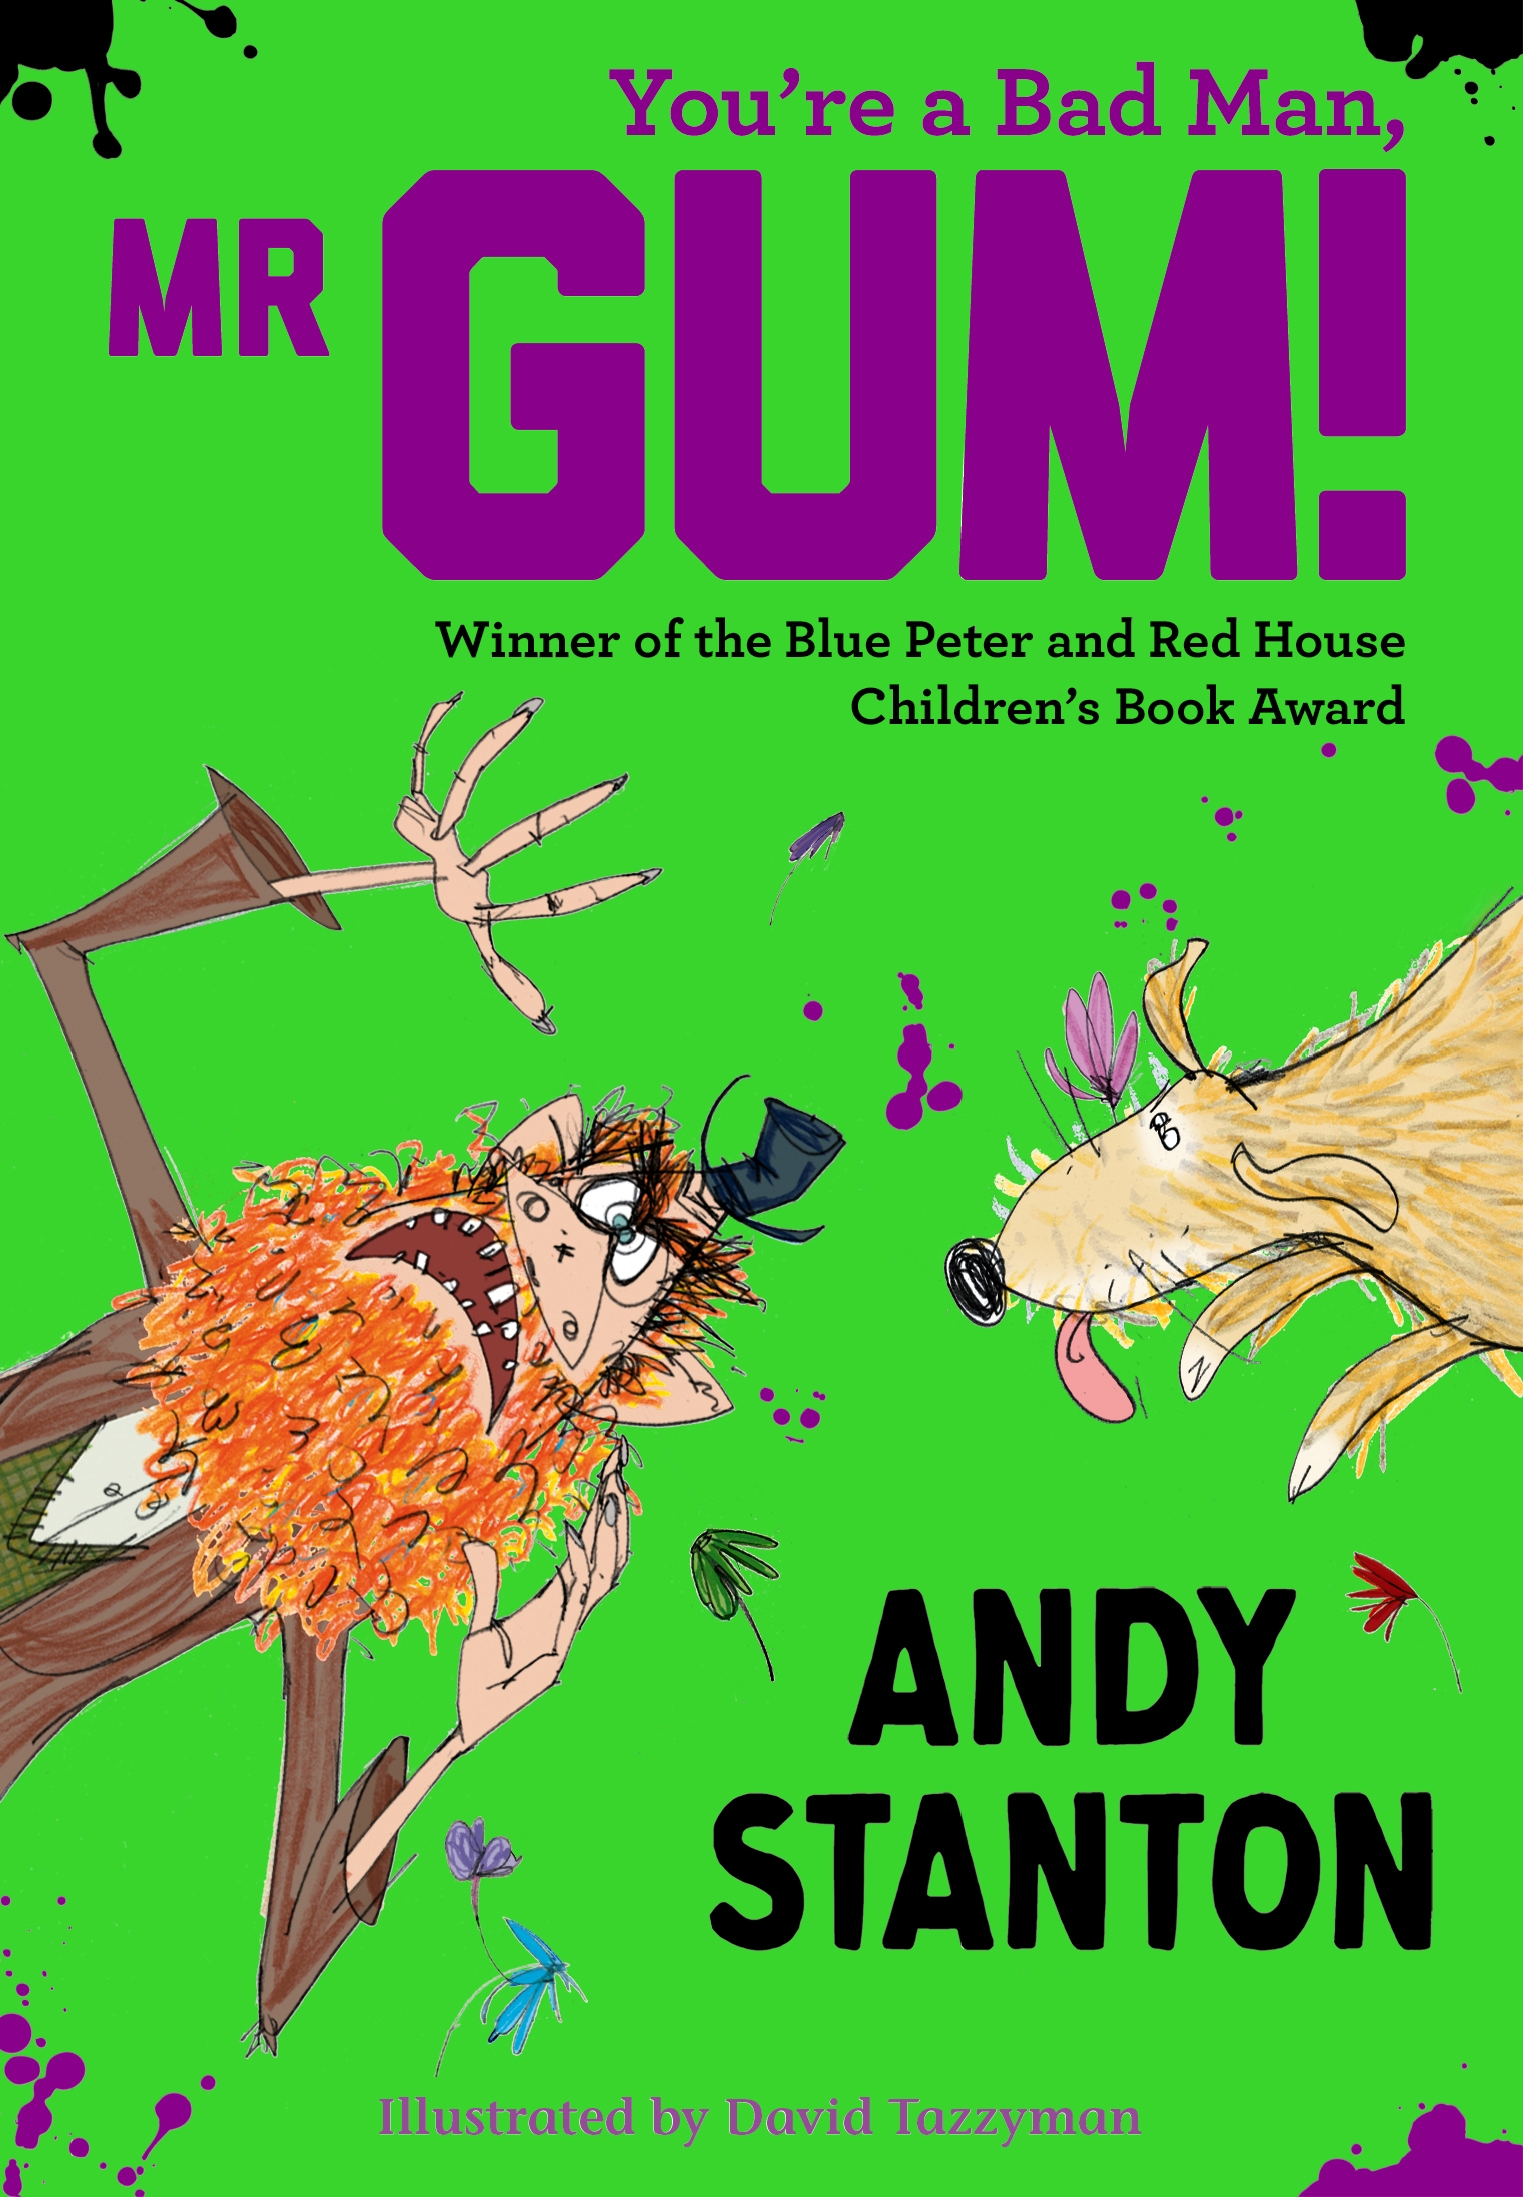 Watch Andy Read the First Chapter from his Award-Winning Debut